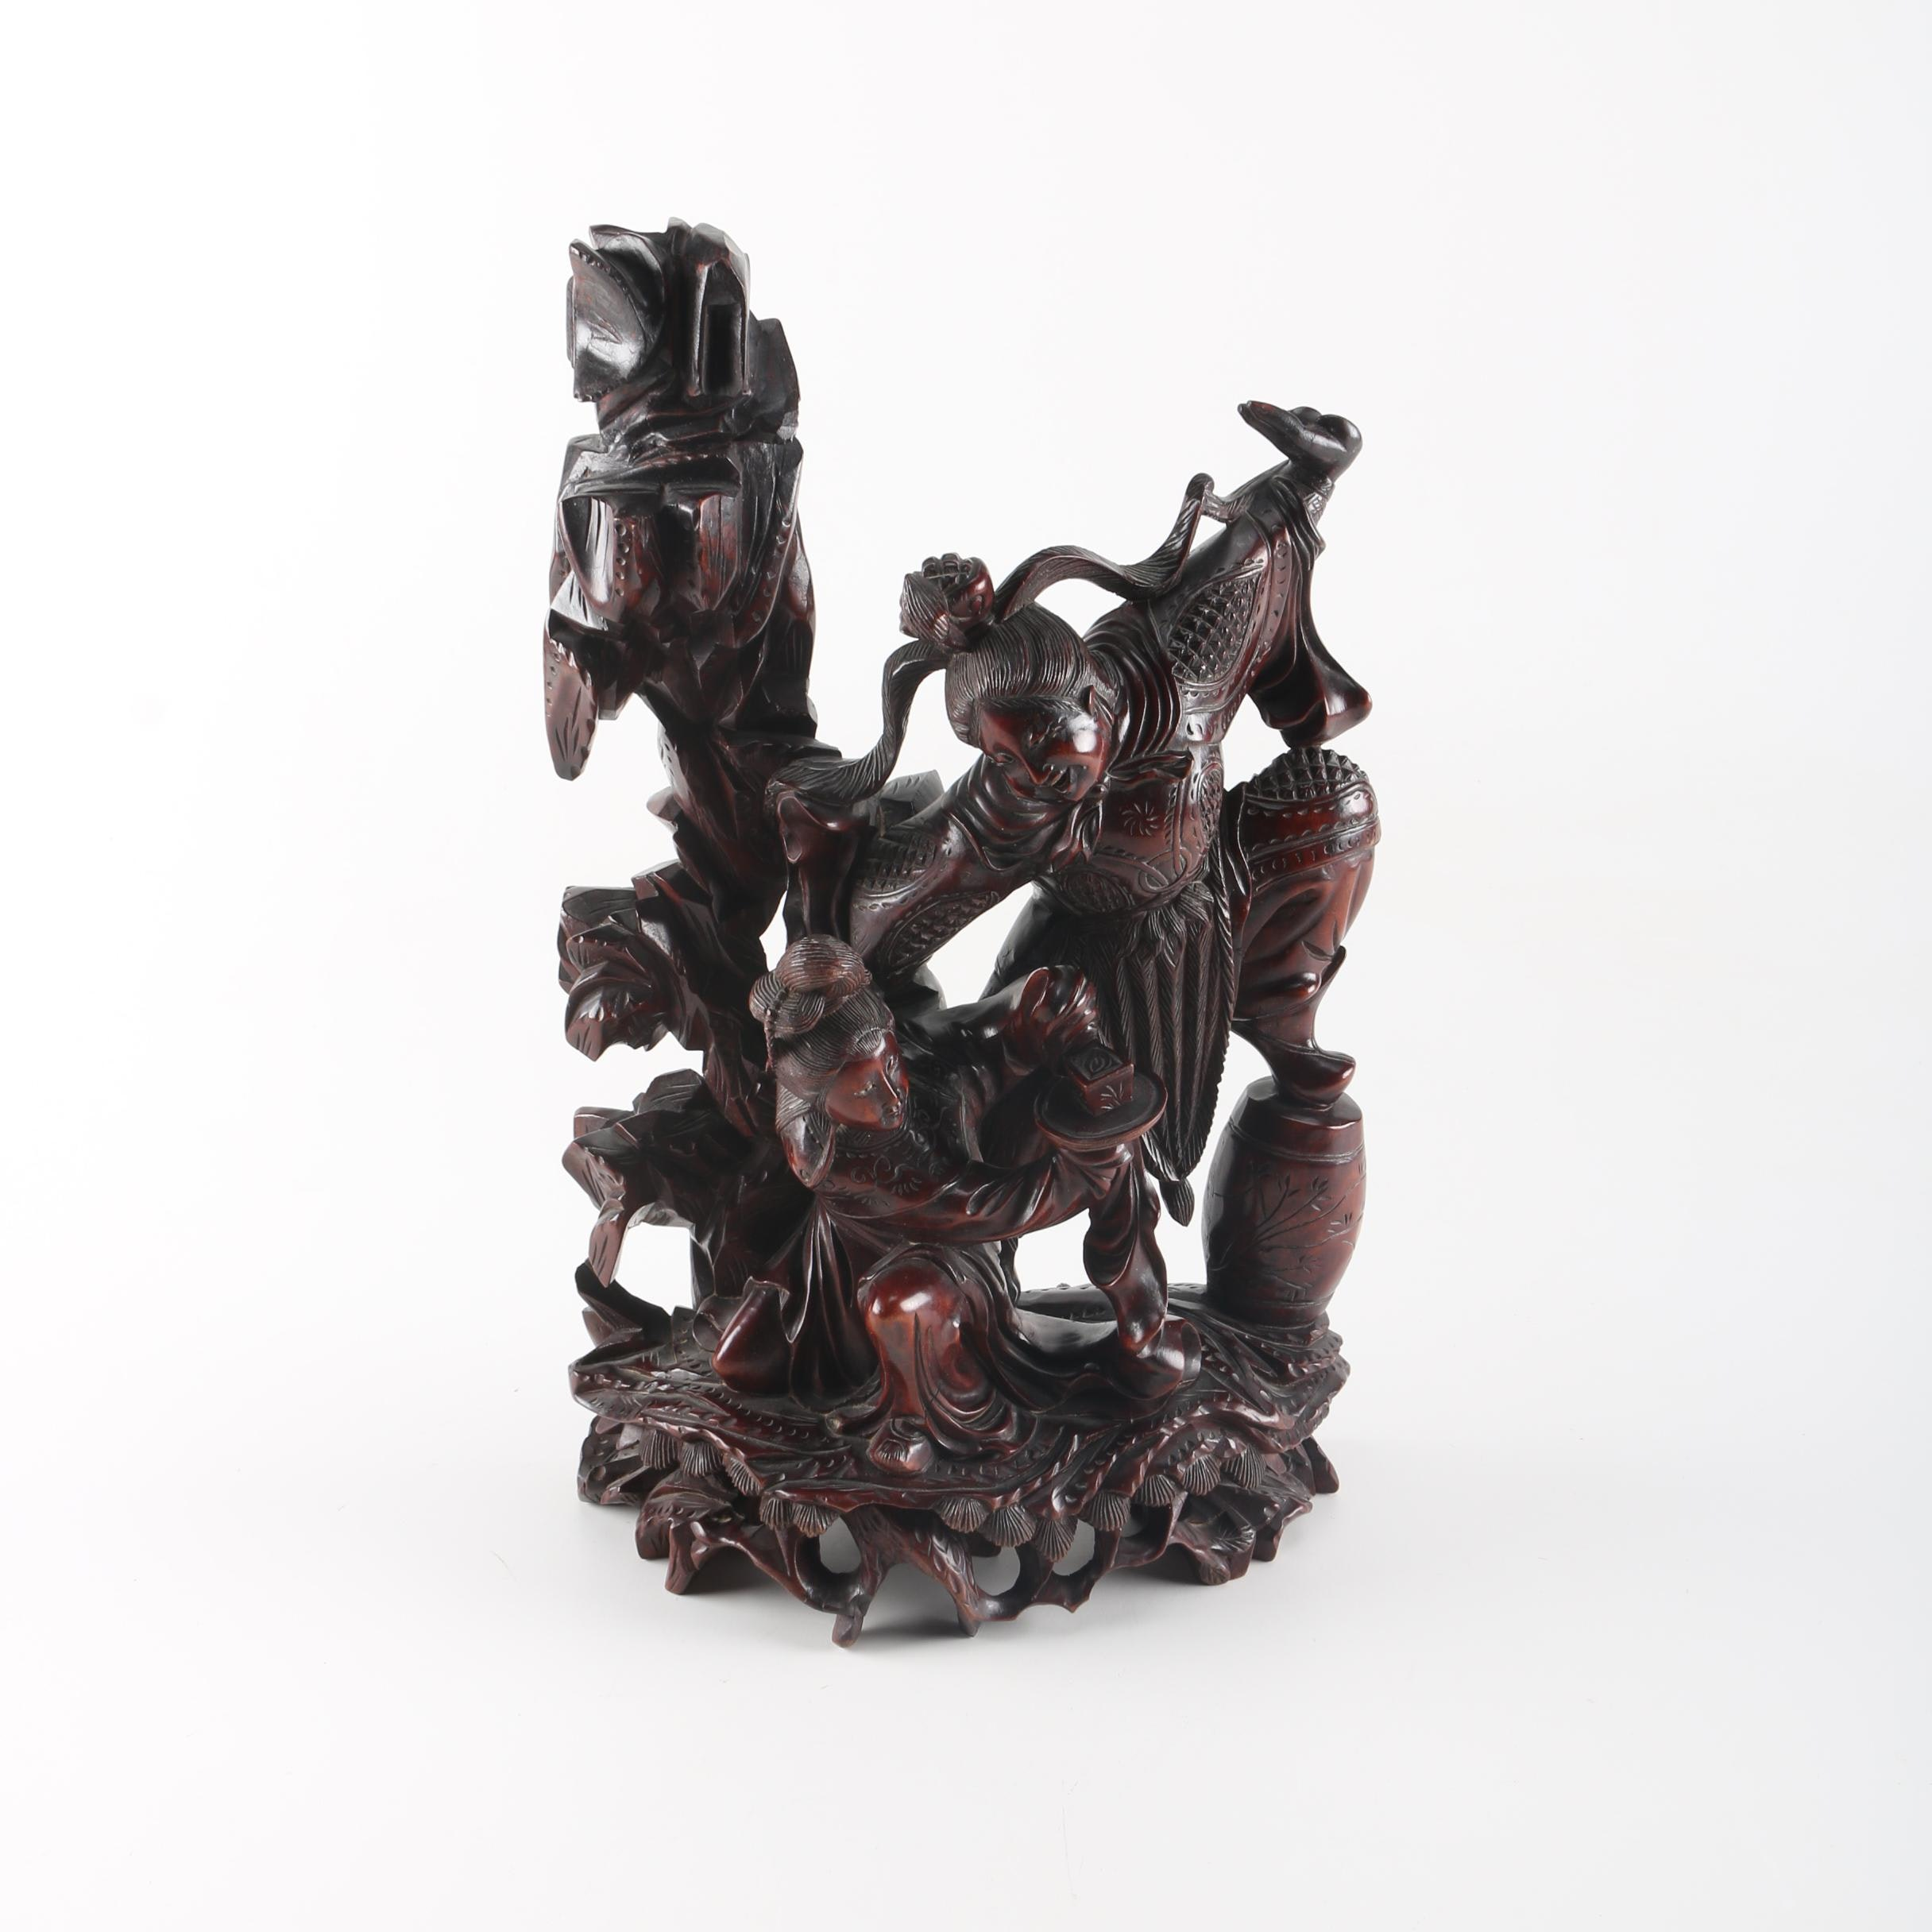 Chinese Carved Wooden Sculpture